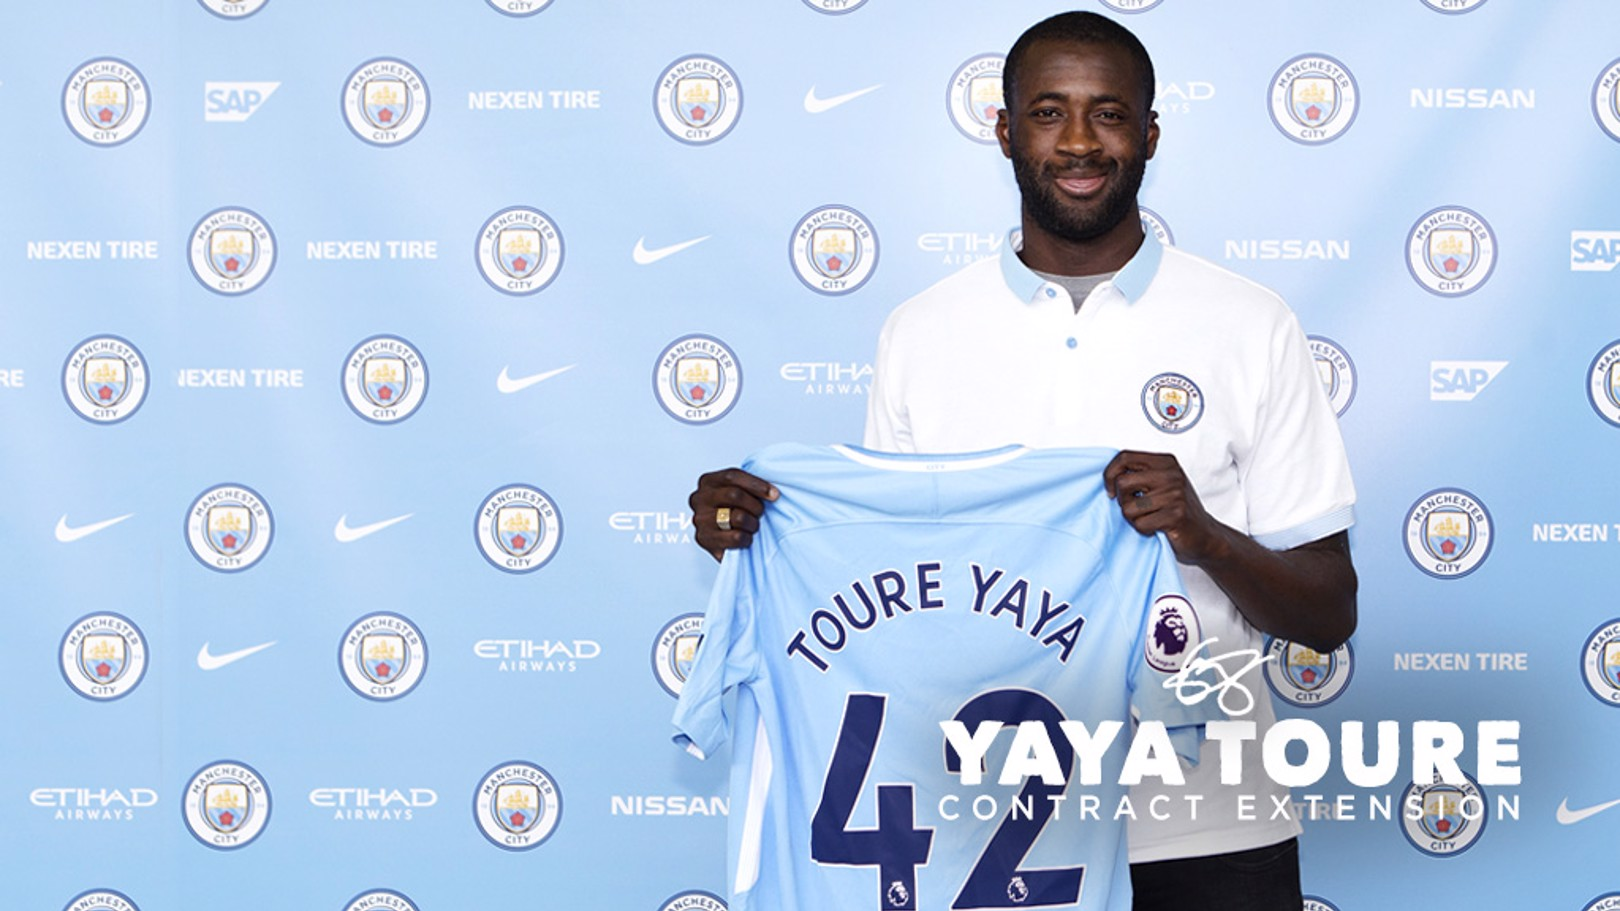 NEW CONTRACT: Yaya Toure has signed a one-year contract extension.